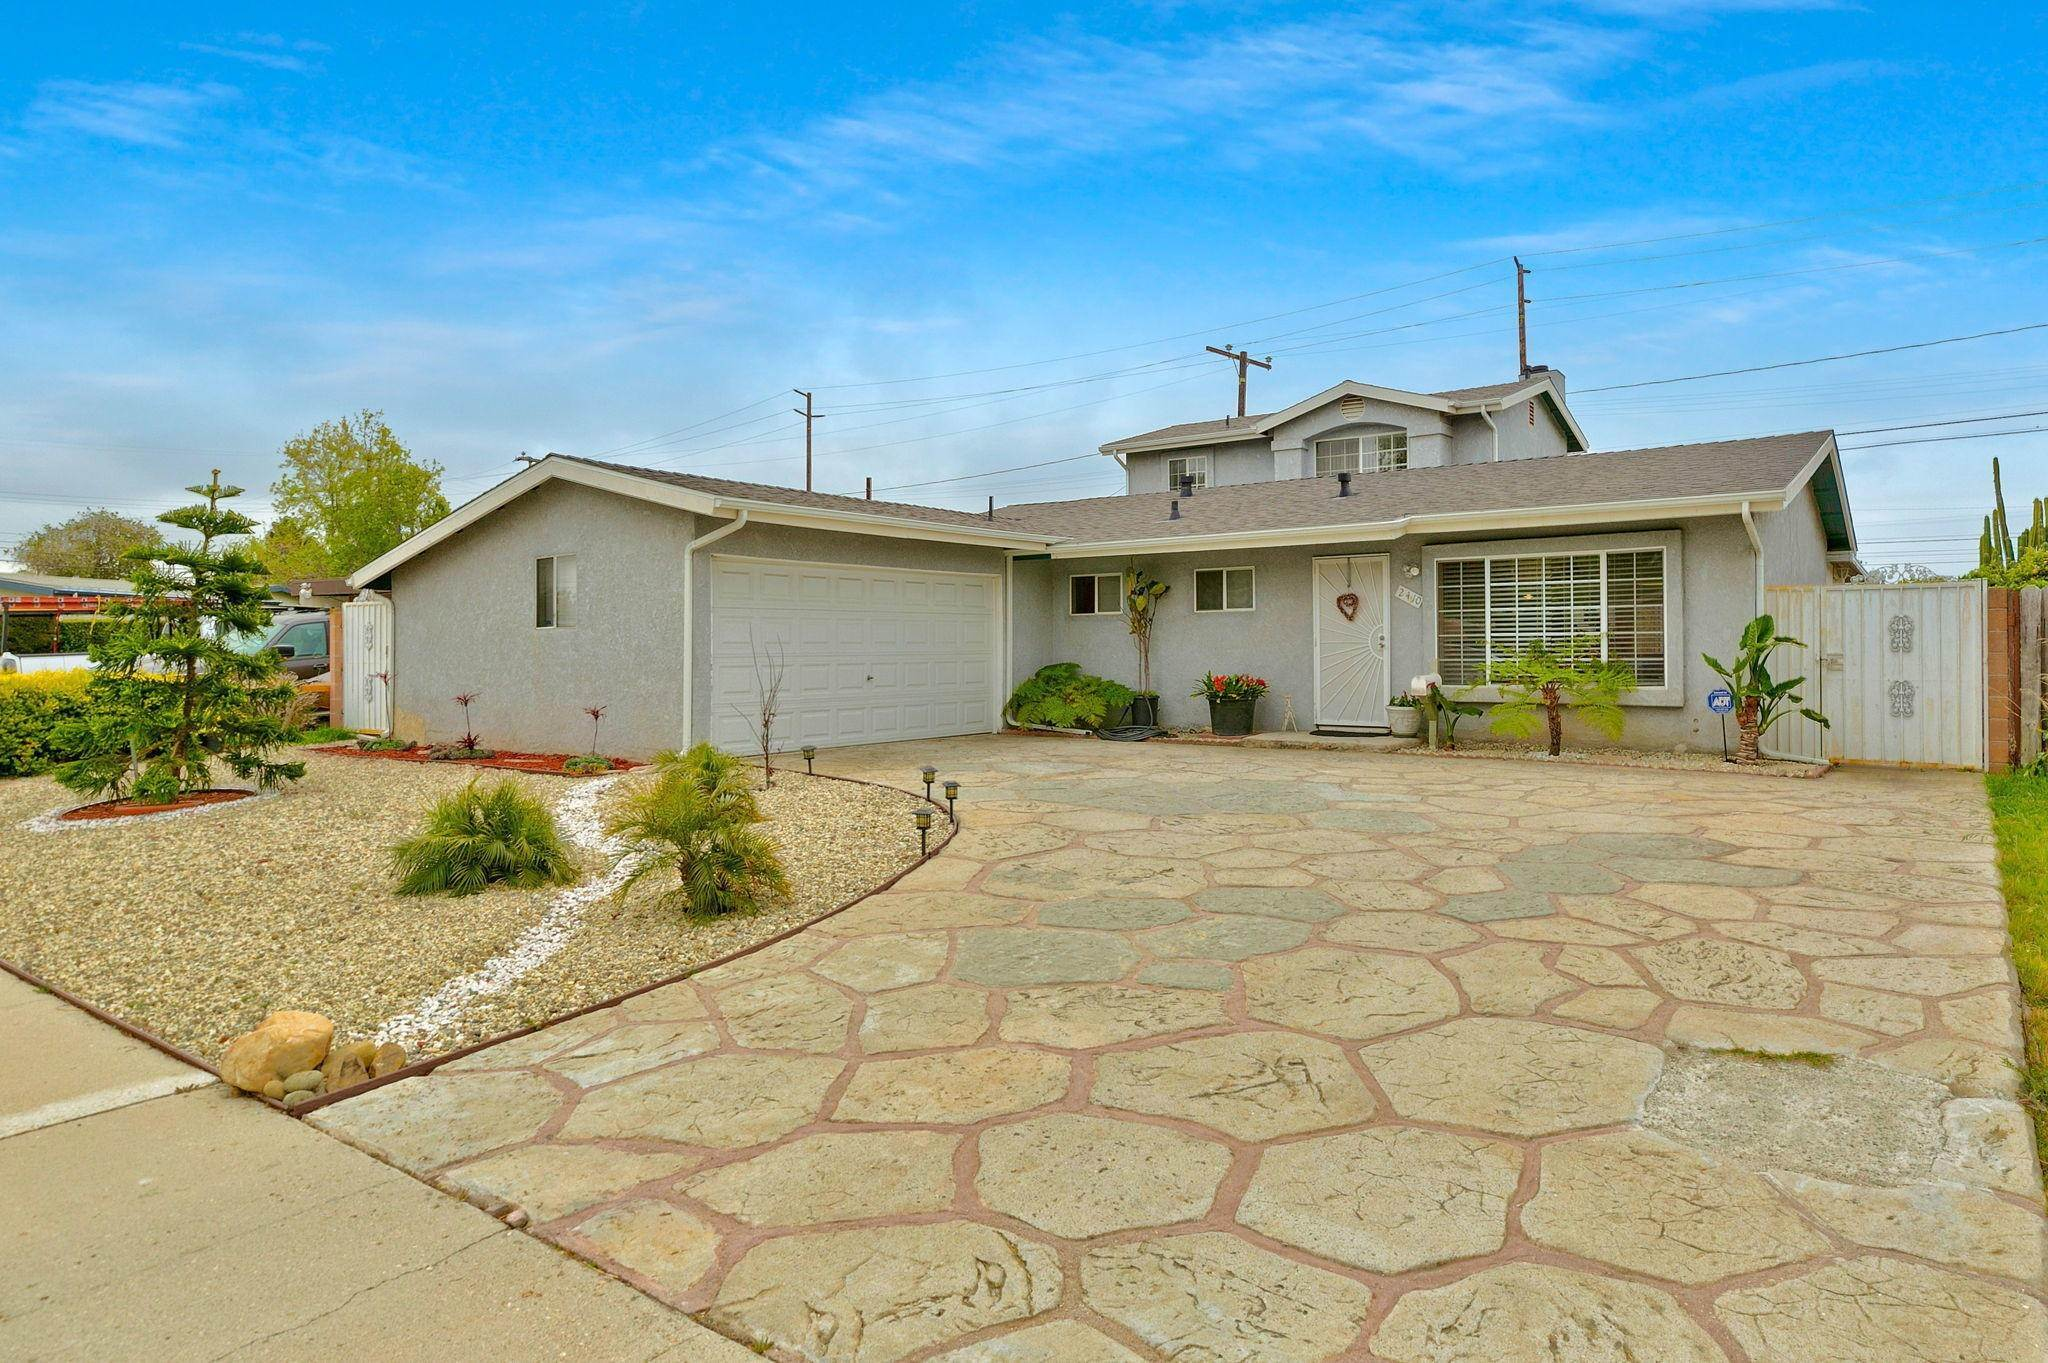 Single Family Homes for Sale at 2410 Claremont Drive Oxnard, California 93035 United States